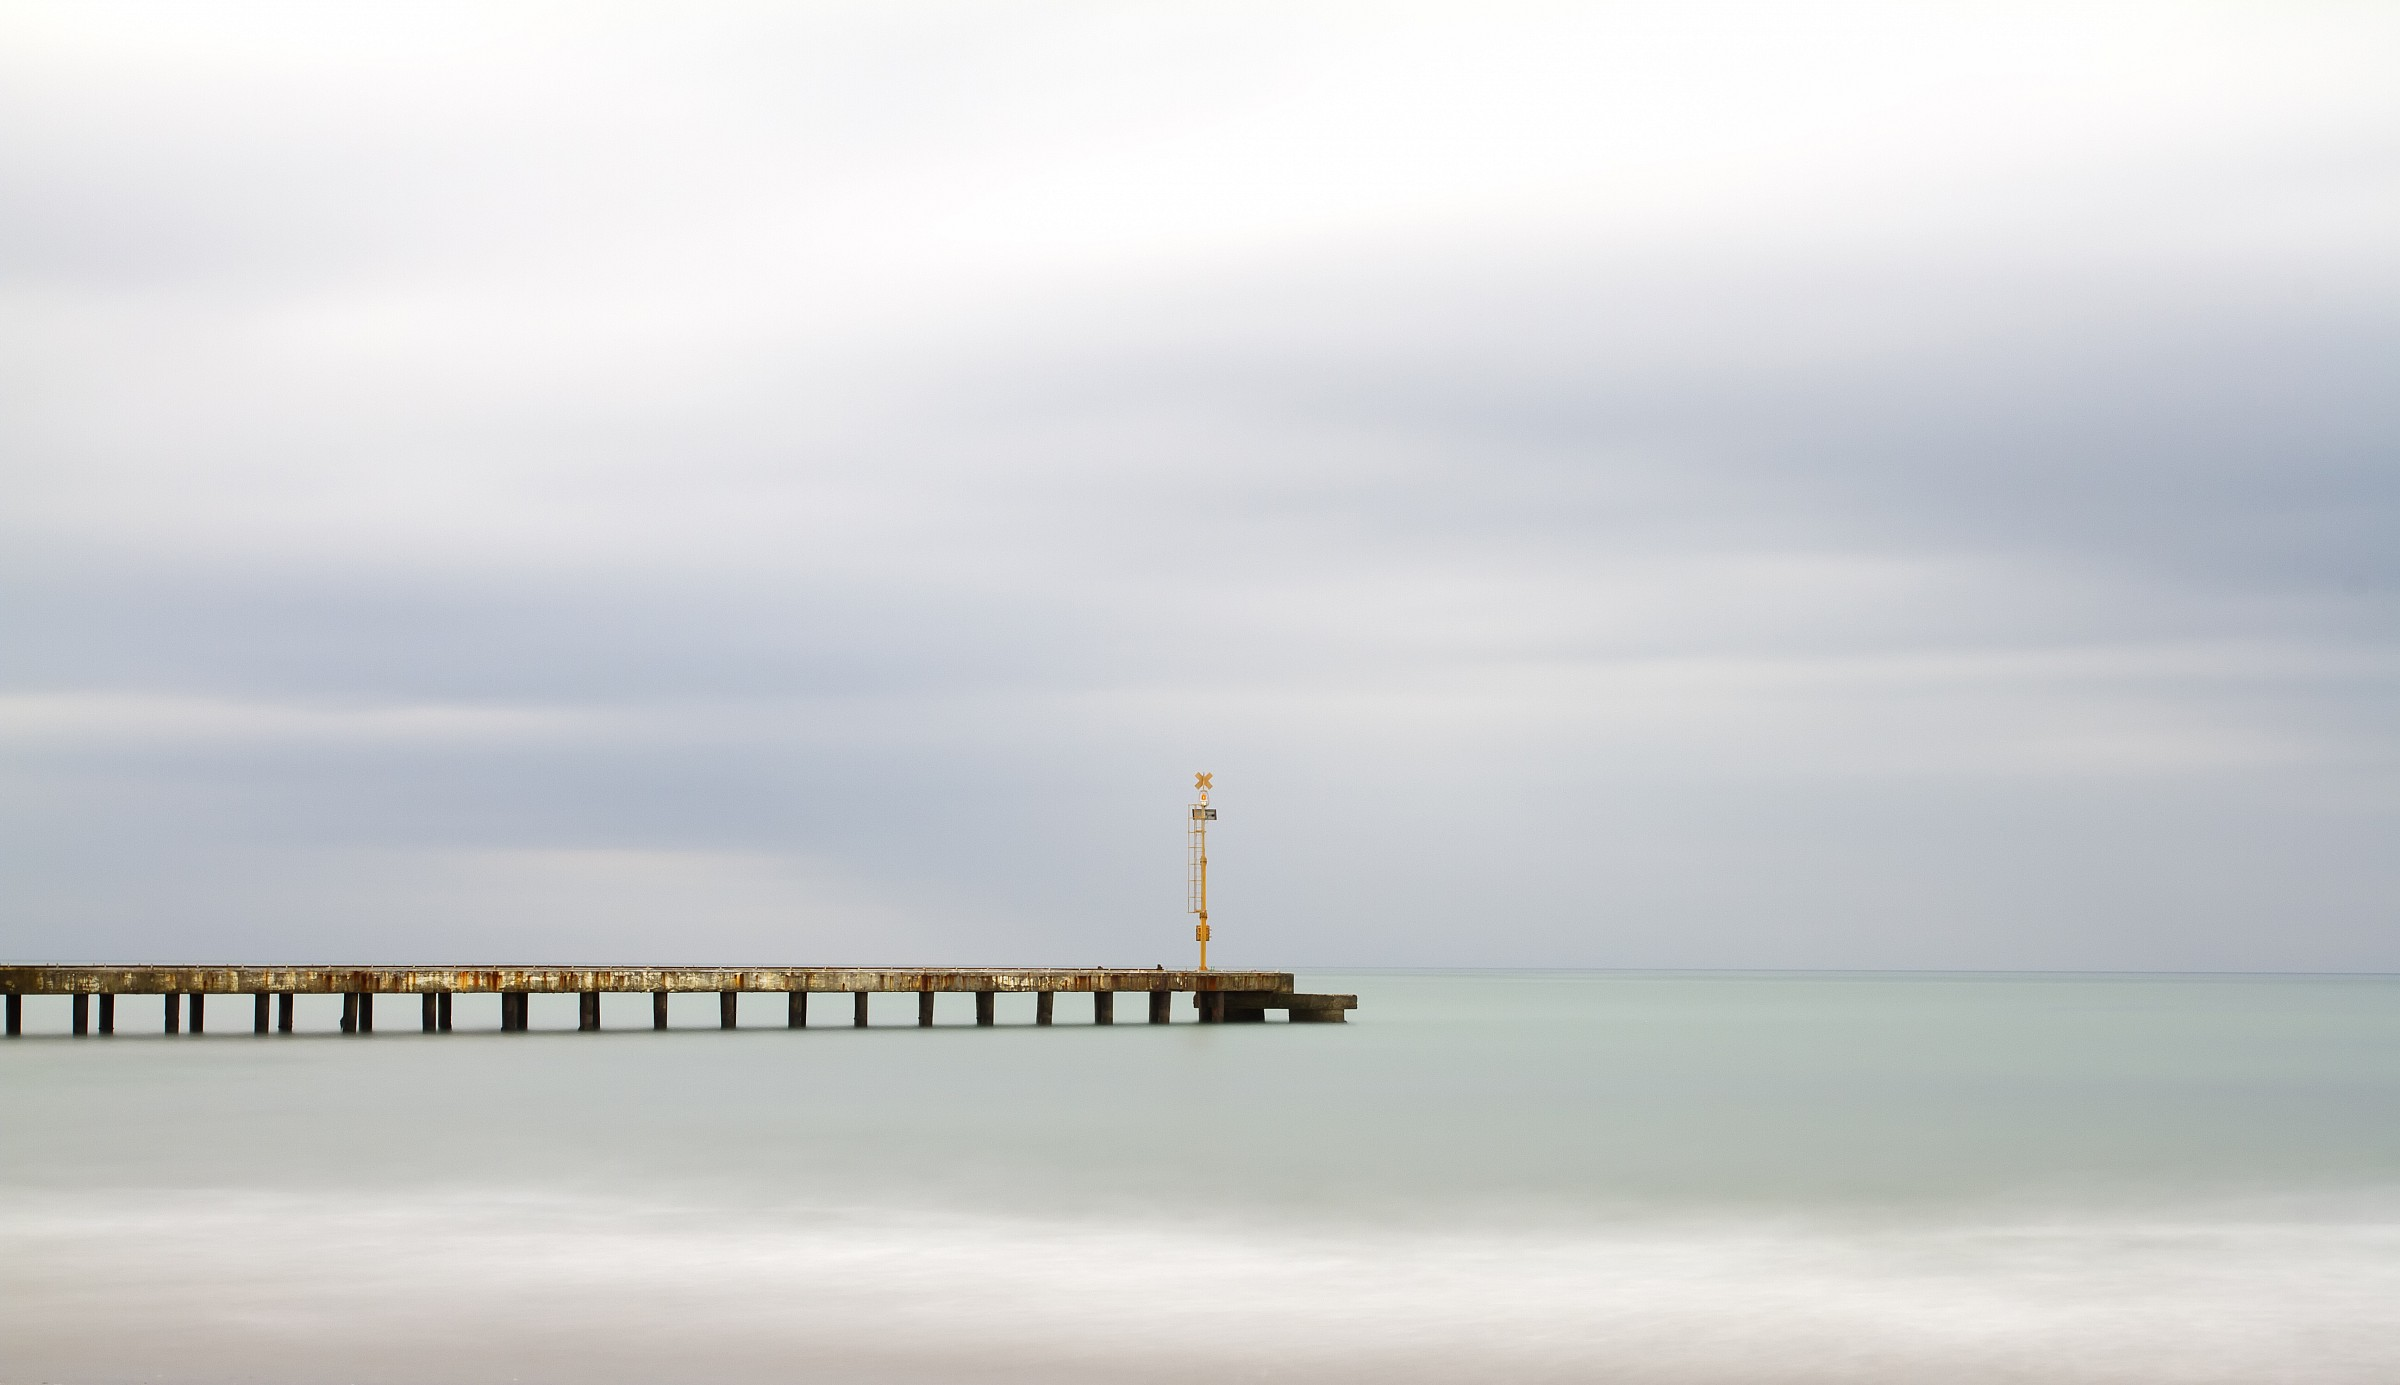 Only a pier...